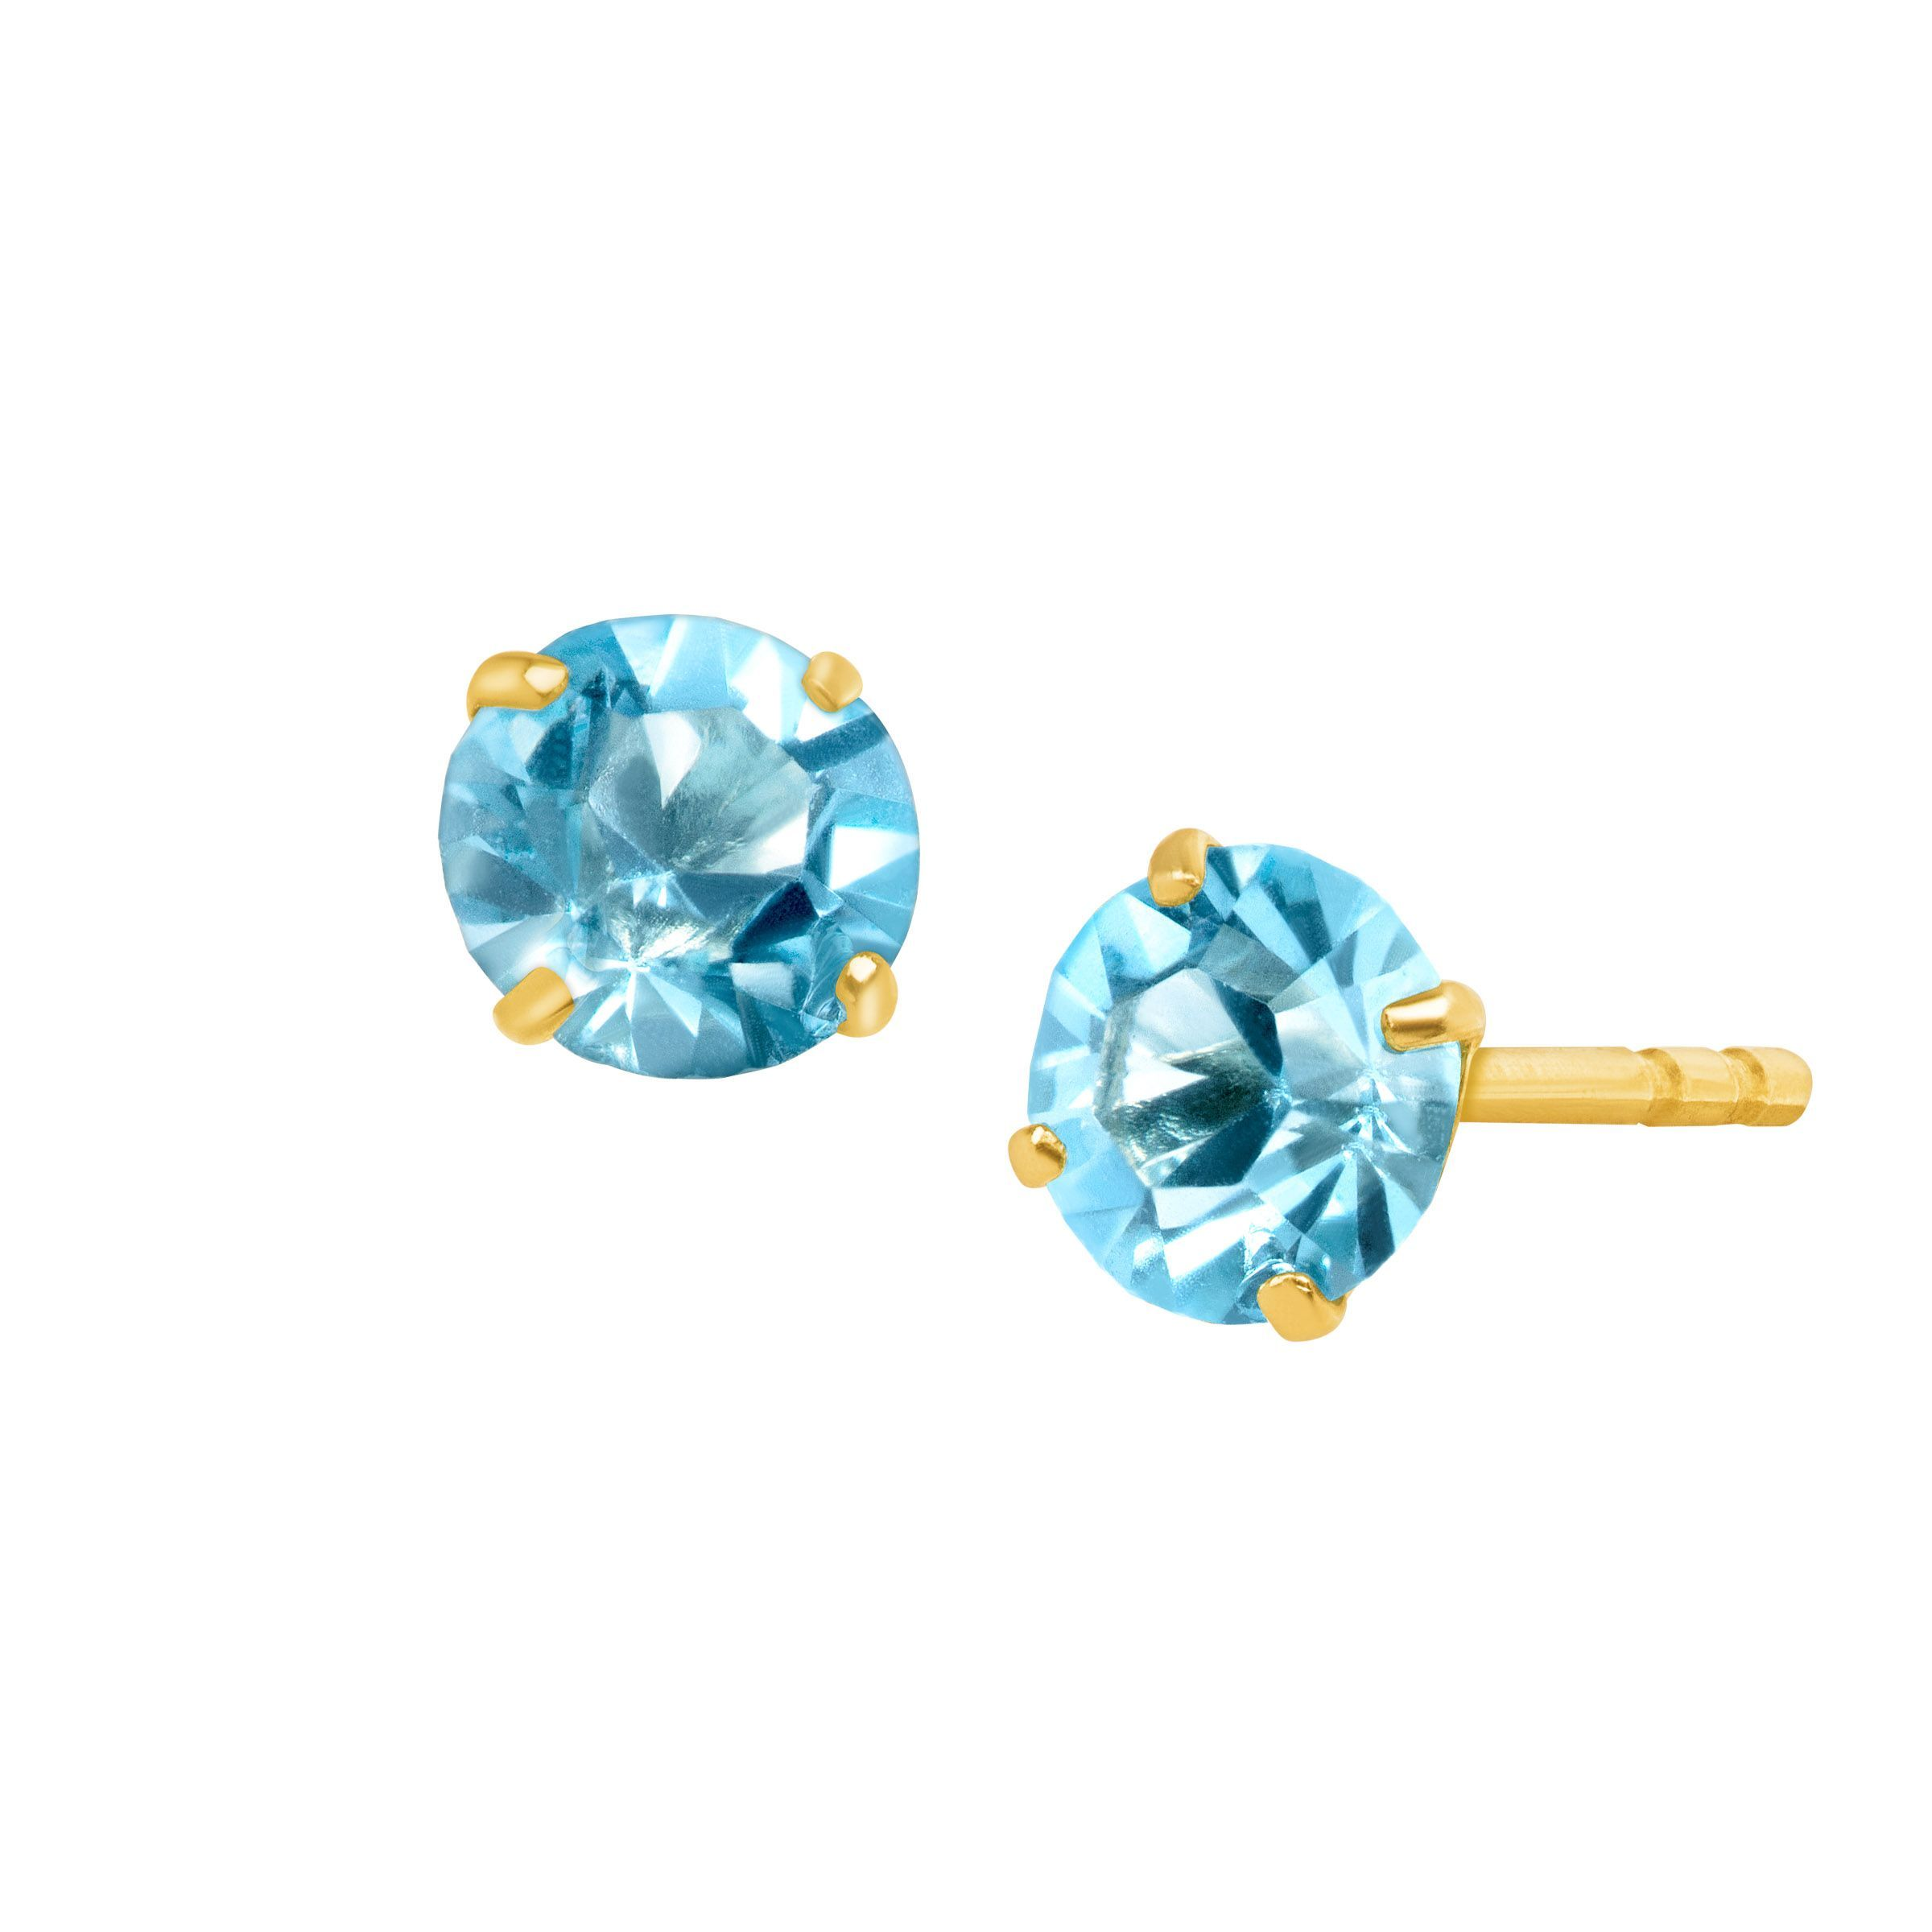 earrings gallery diamond morelli stud stellanise aqua normal product paul jewelry white large marine aquamarine lyst